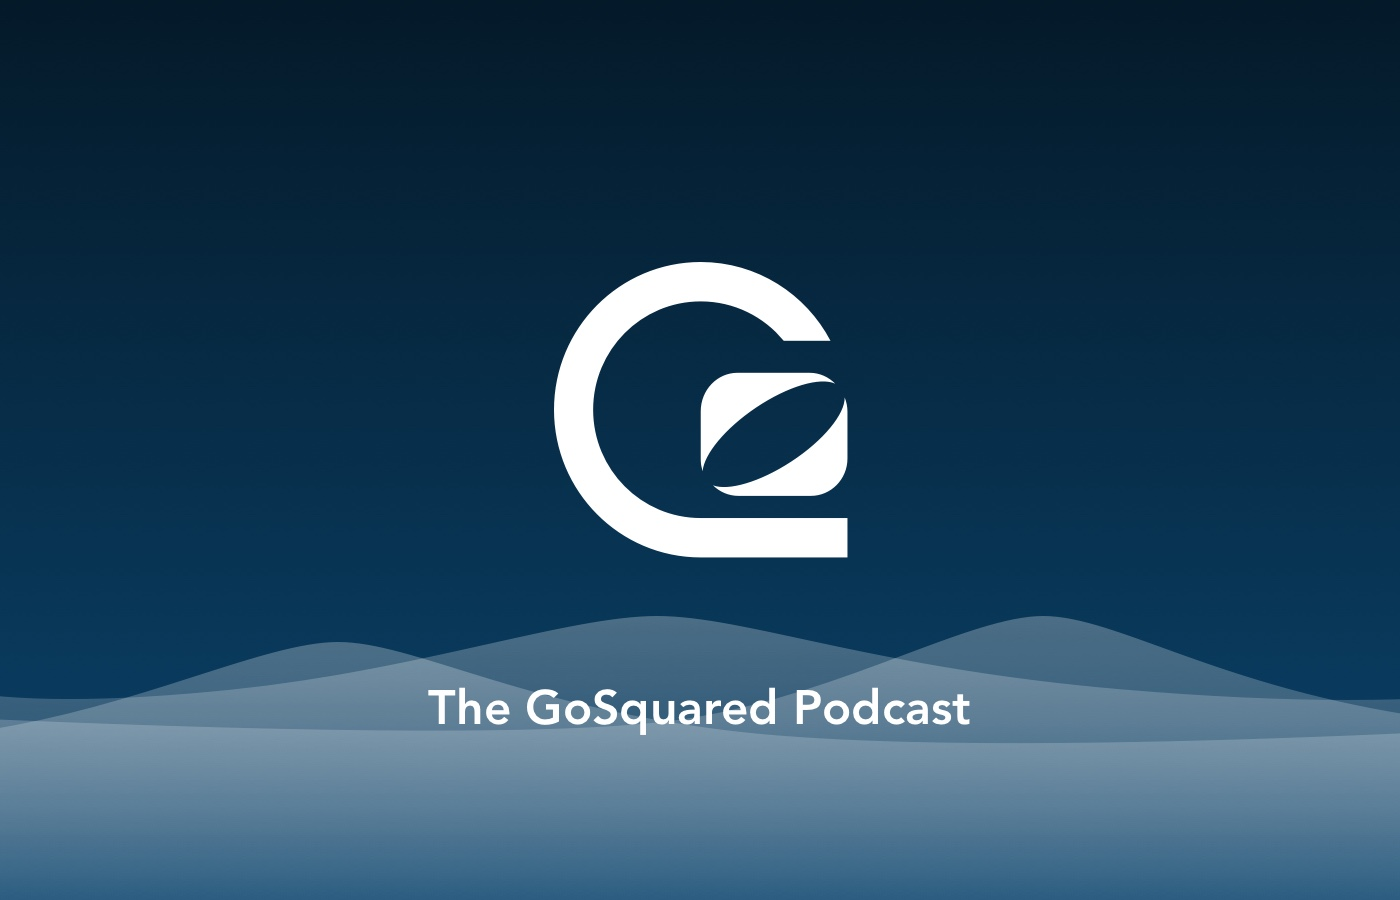 The GoSquared Podcast